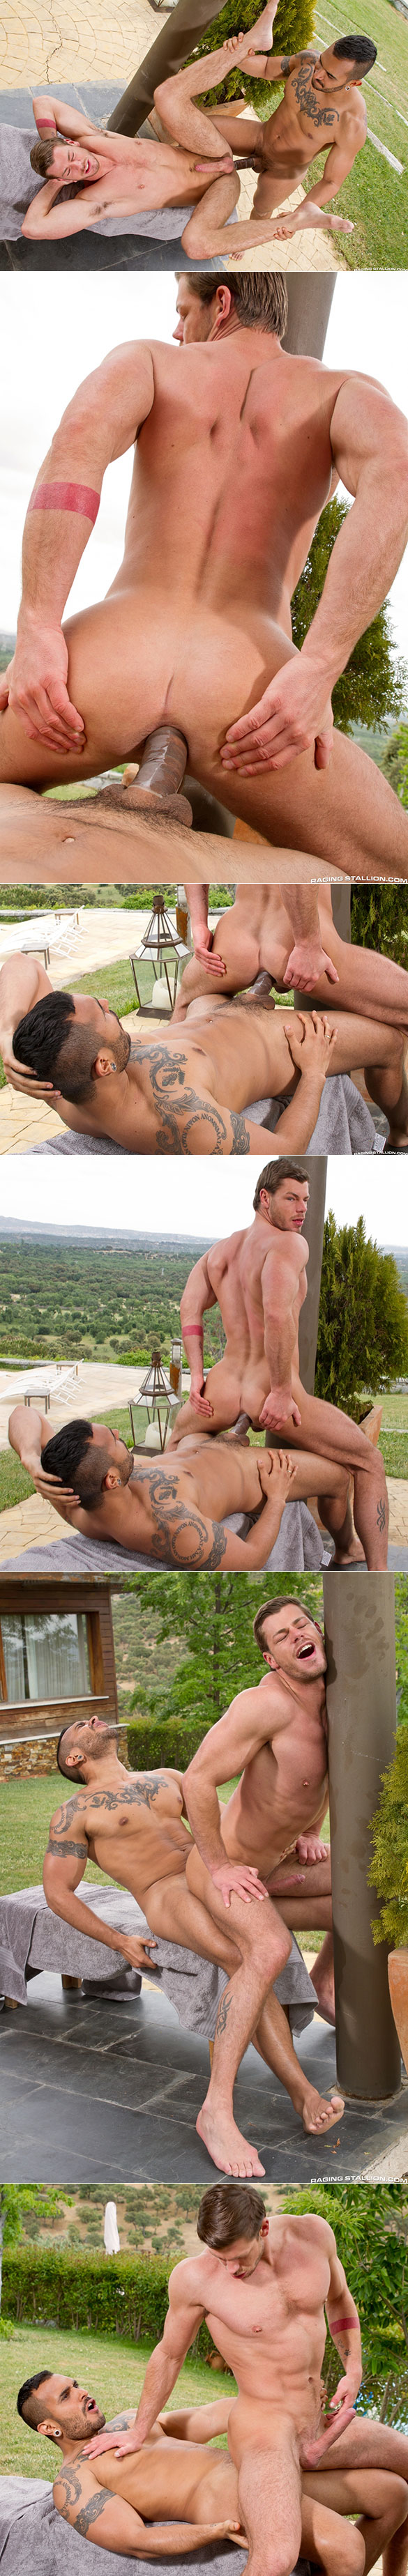 "Raging Stallion: Toby Dutch rides Lucio Saints' thick cock in ""Gran Vista"""